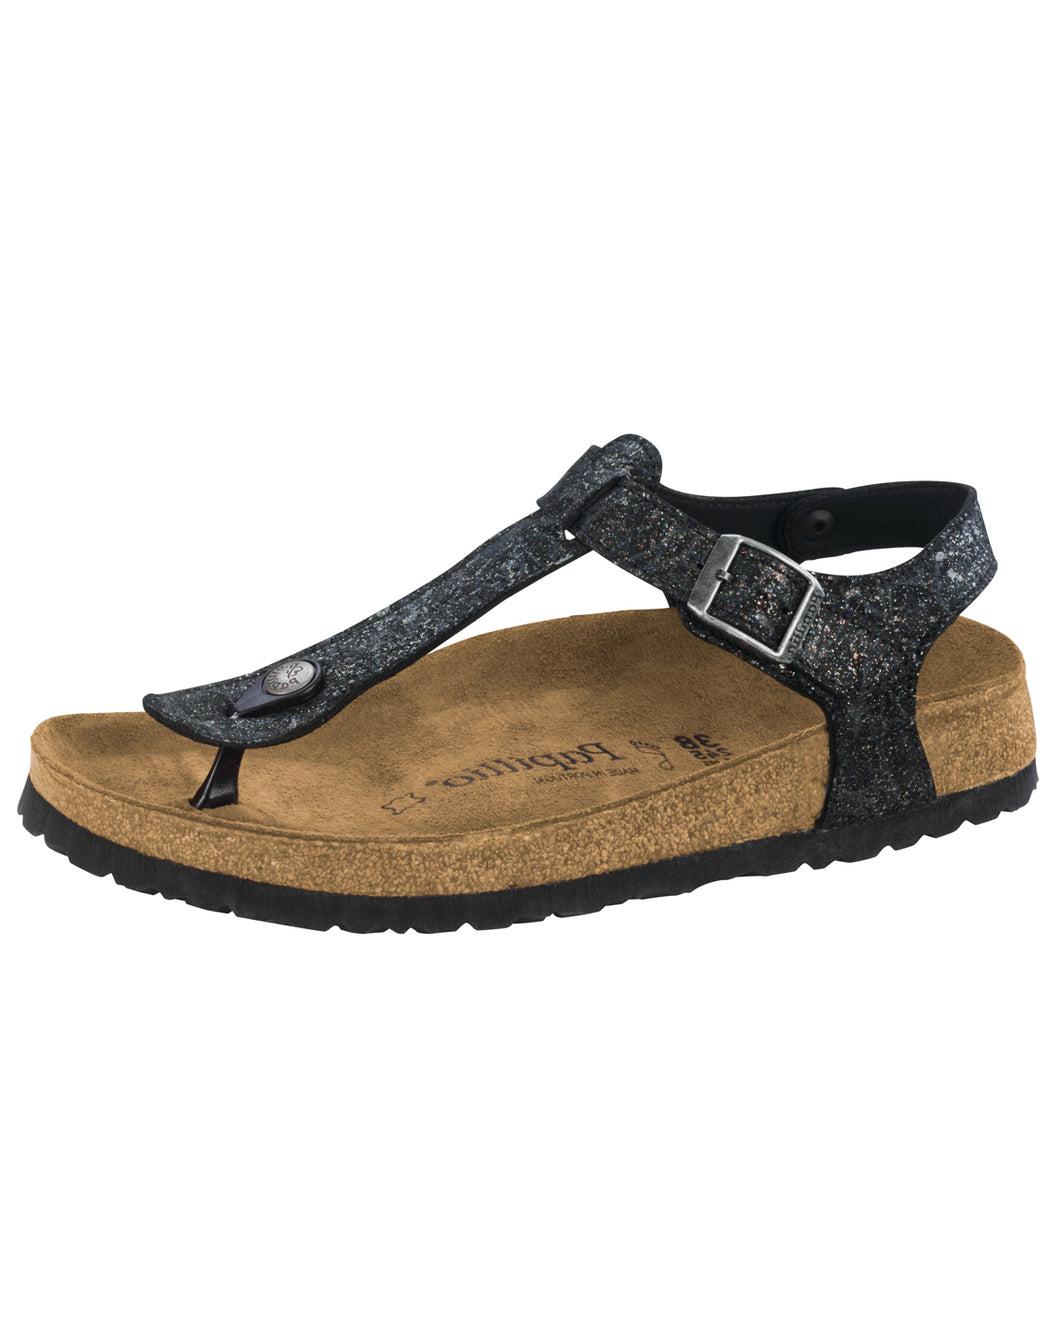 BIRKENSTOCK KAIRO GRACE BLACK NU REGULAR